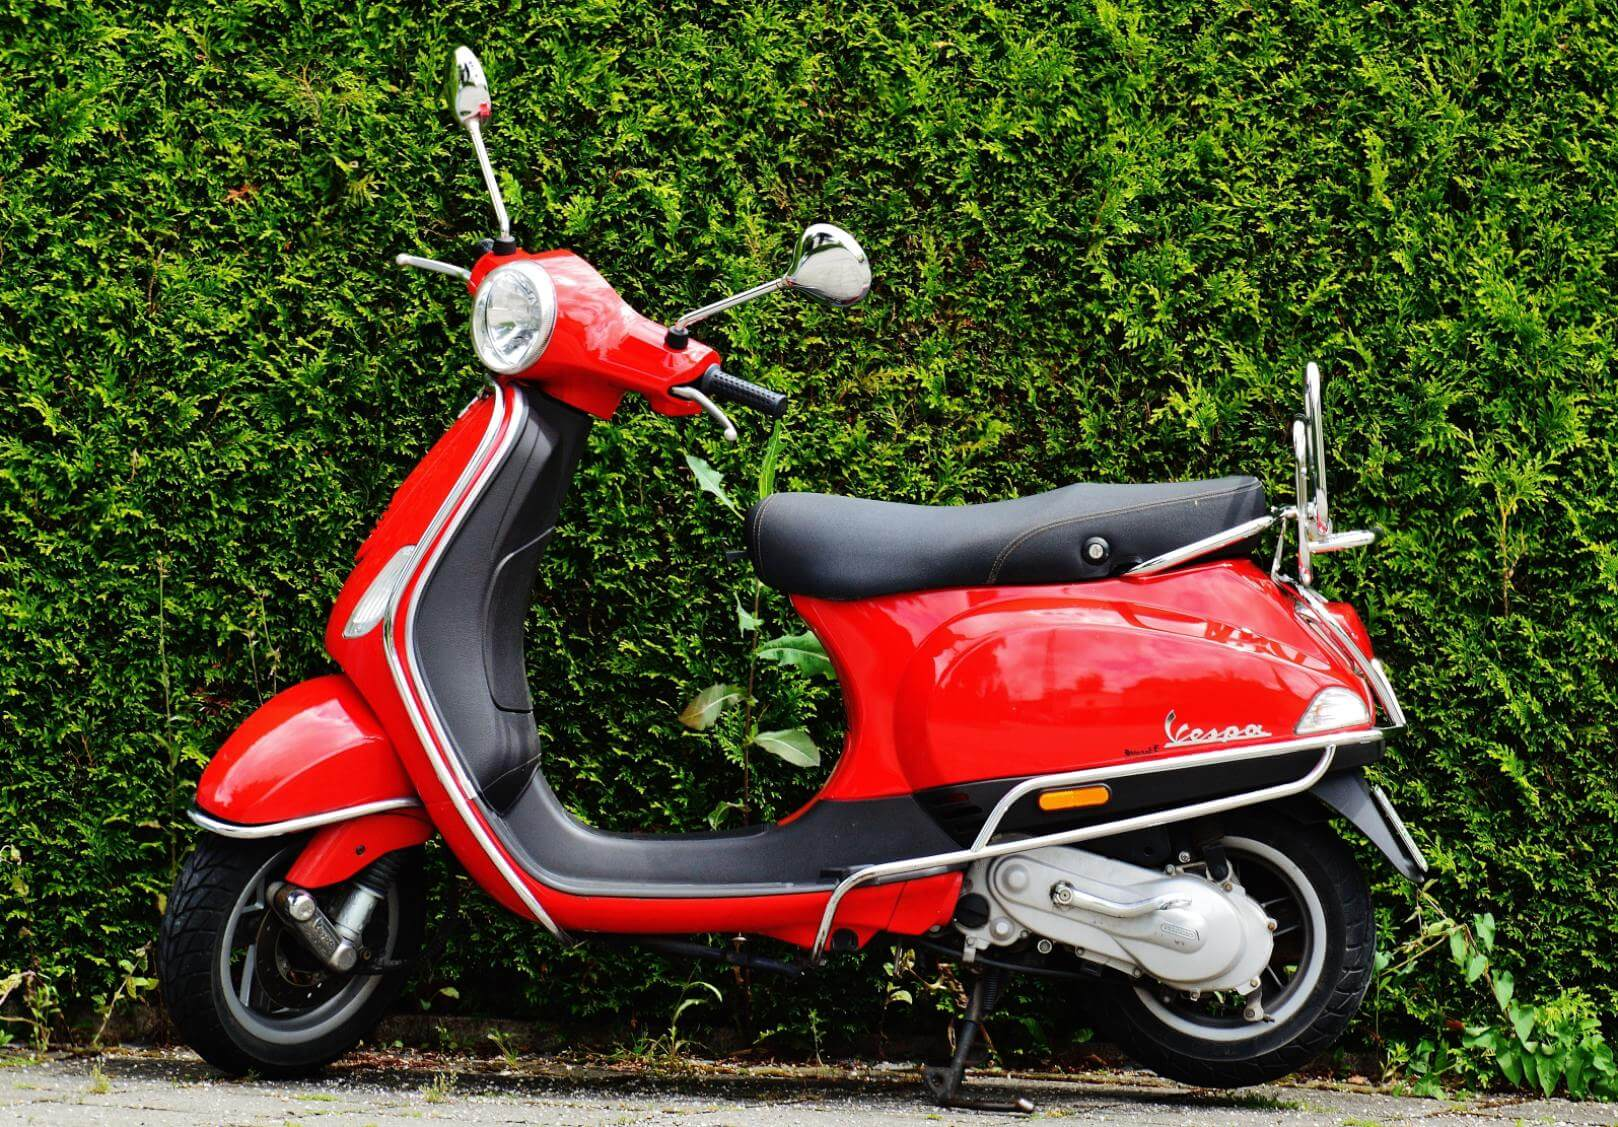 Vespa Scooter - Original image